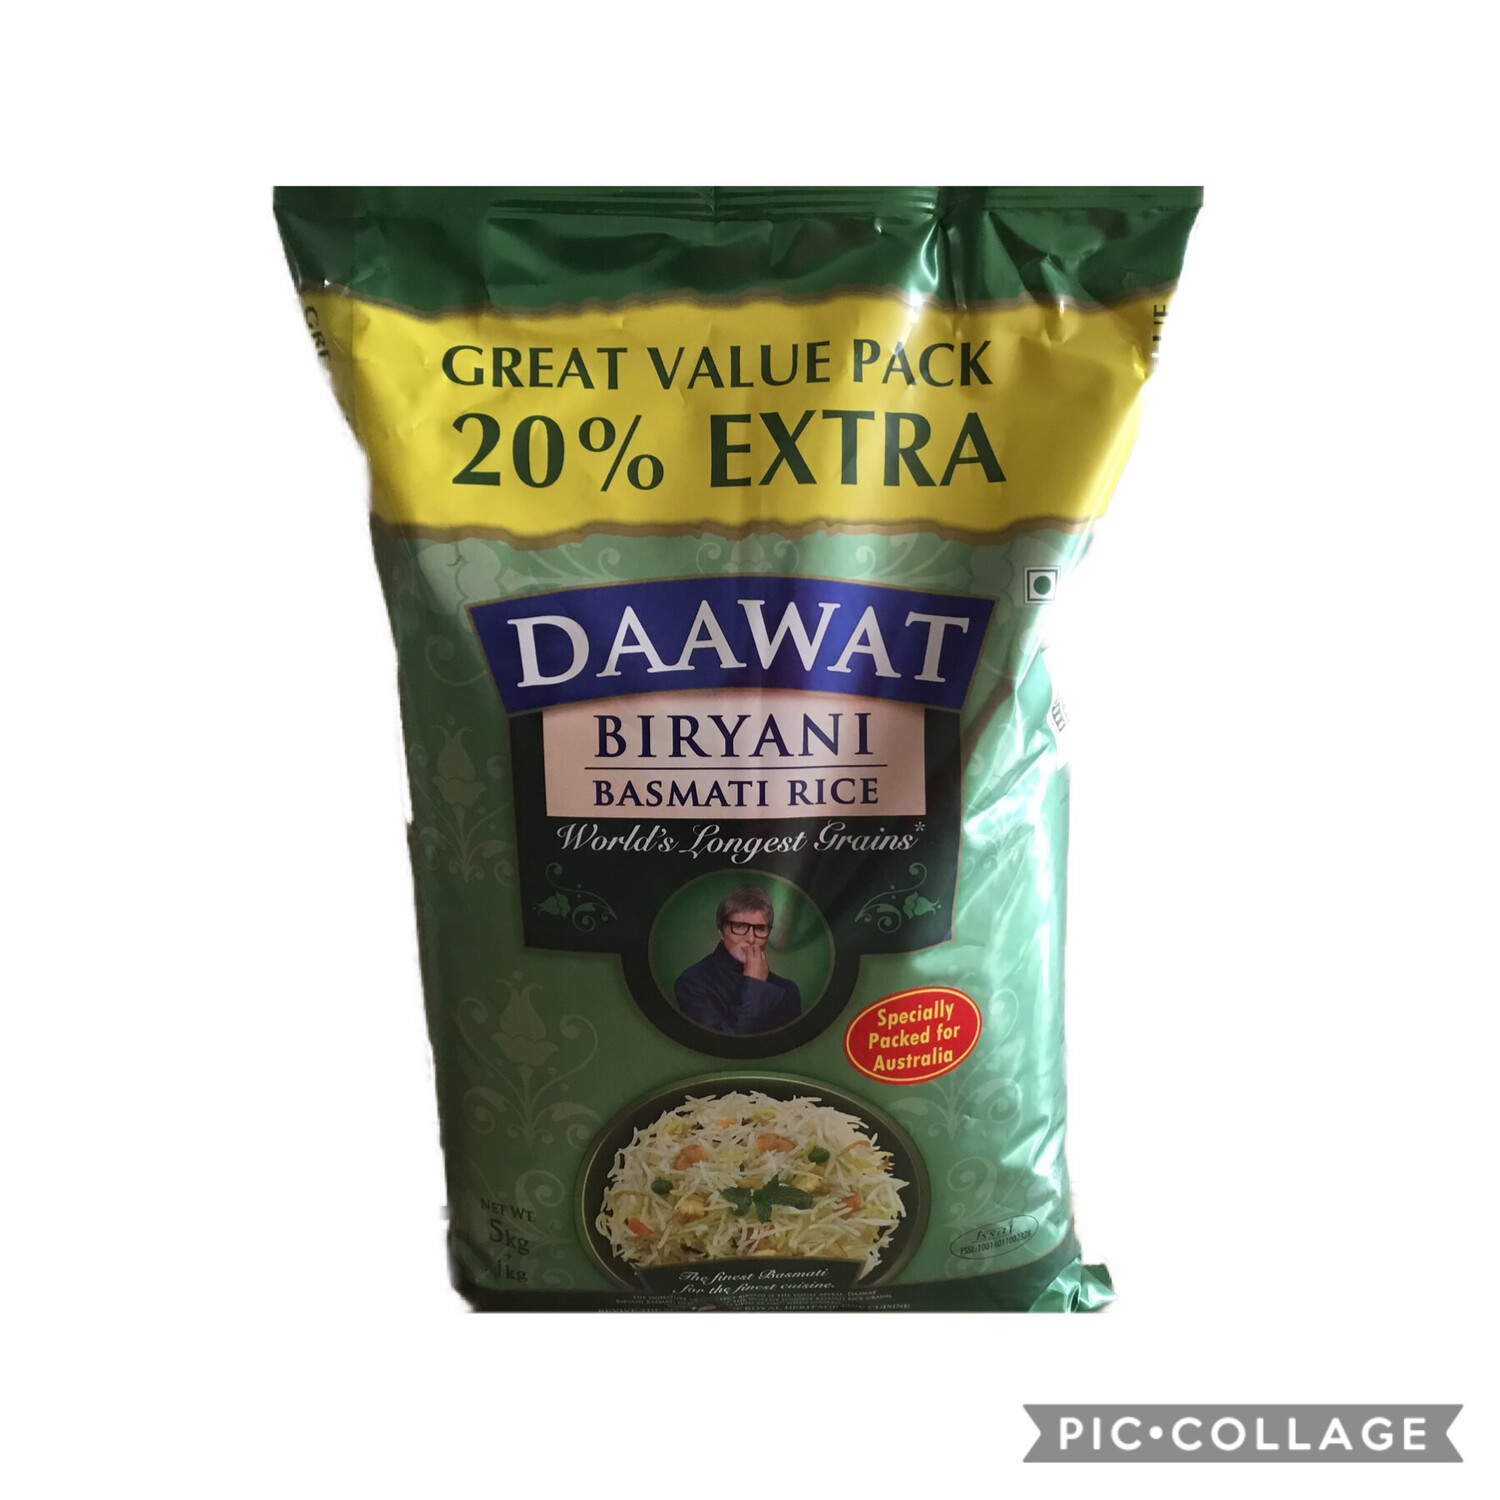 BIRYANI DAWAAT  5 KG ( NOW 1 KG EXTRA - 20% MORE)